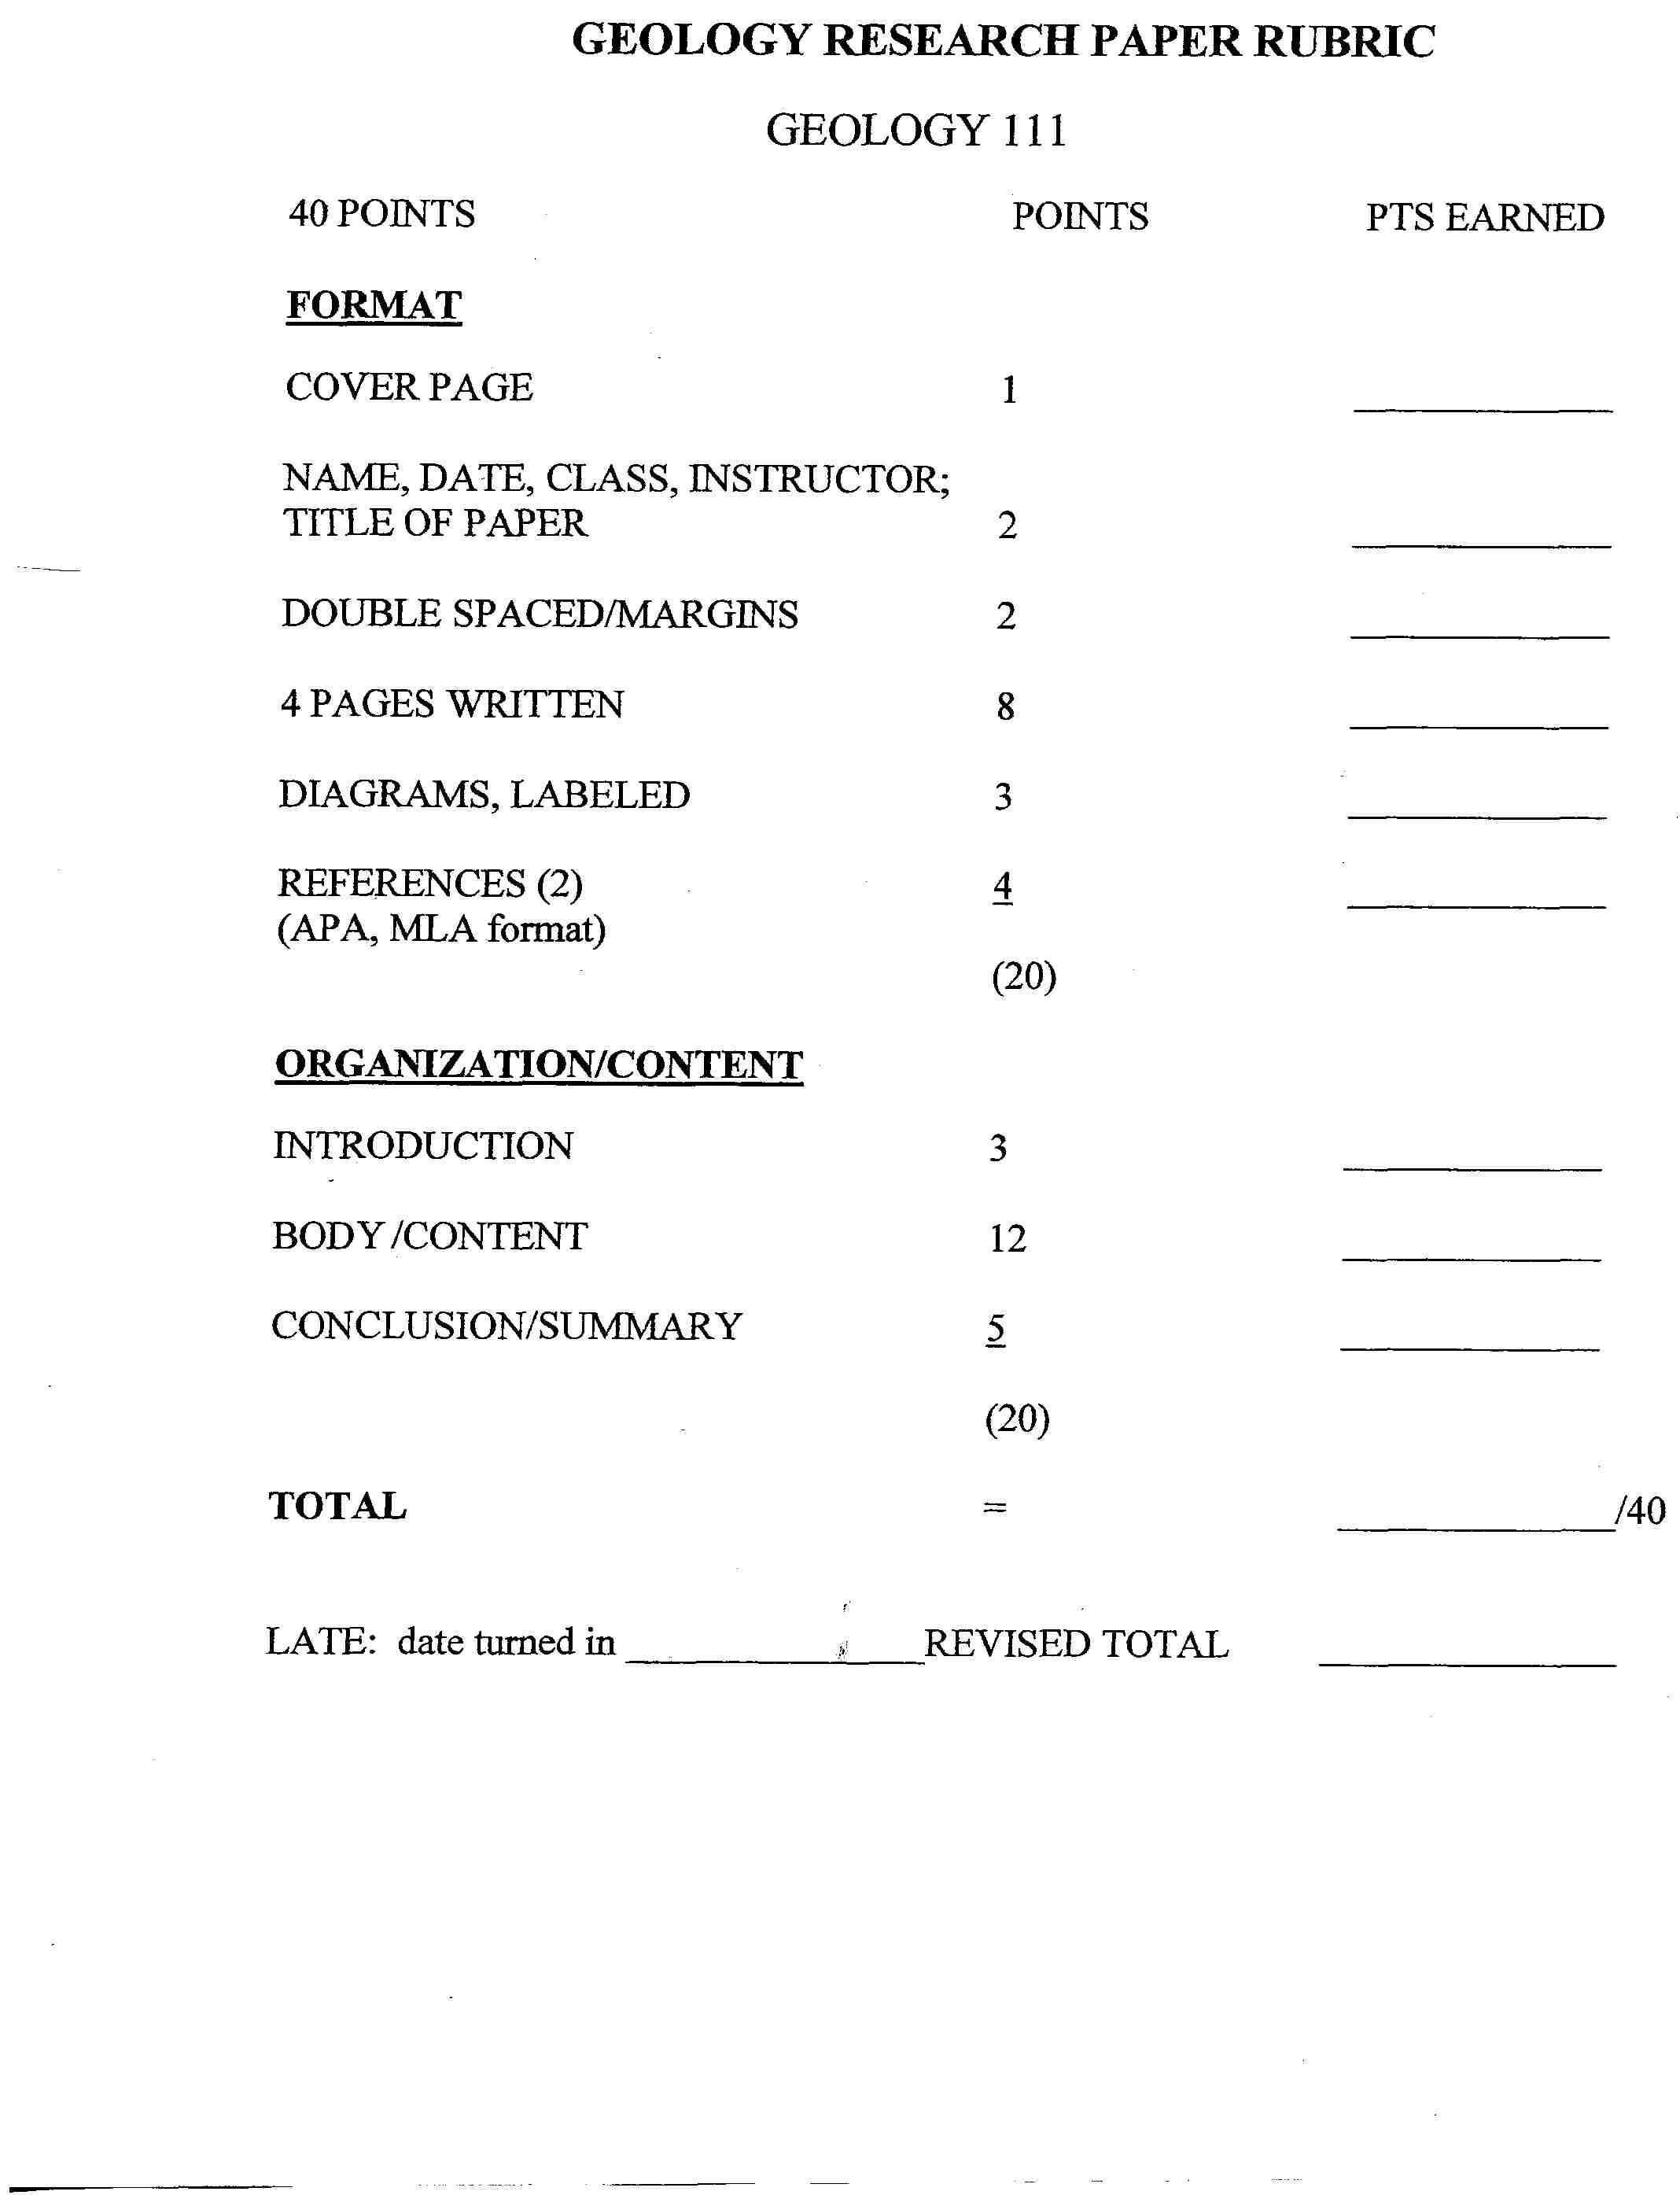 Good Proposal Essay Topics Reflection Paper Essayirubric Reflective Essay Rubric L Rcampus Reflective  Essay Rubric Illinois State Communication Reflection Paper A Modest Proposal Ideas For Essays also Thesis Statement Analytical Essay Buy Philosophy Cover Letter Customer Service Rep Call Center Cover  Extended Essay Topics English